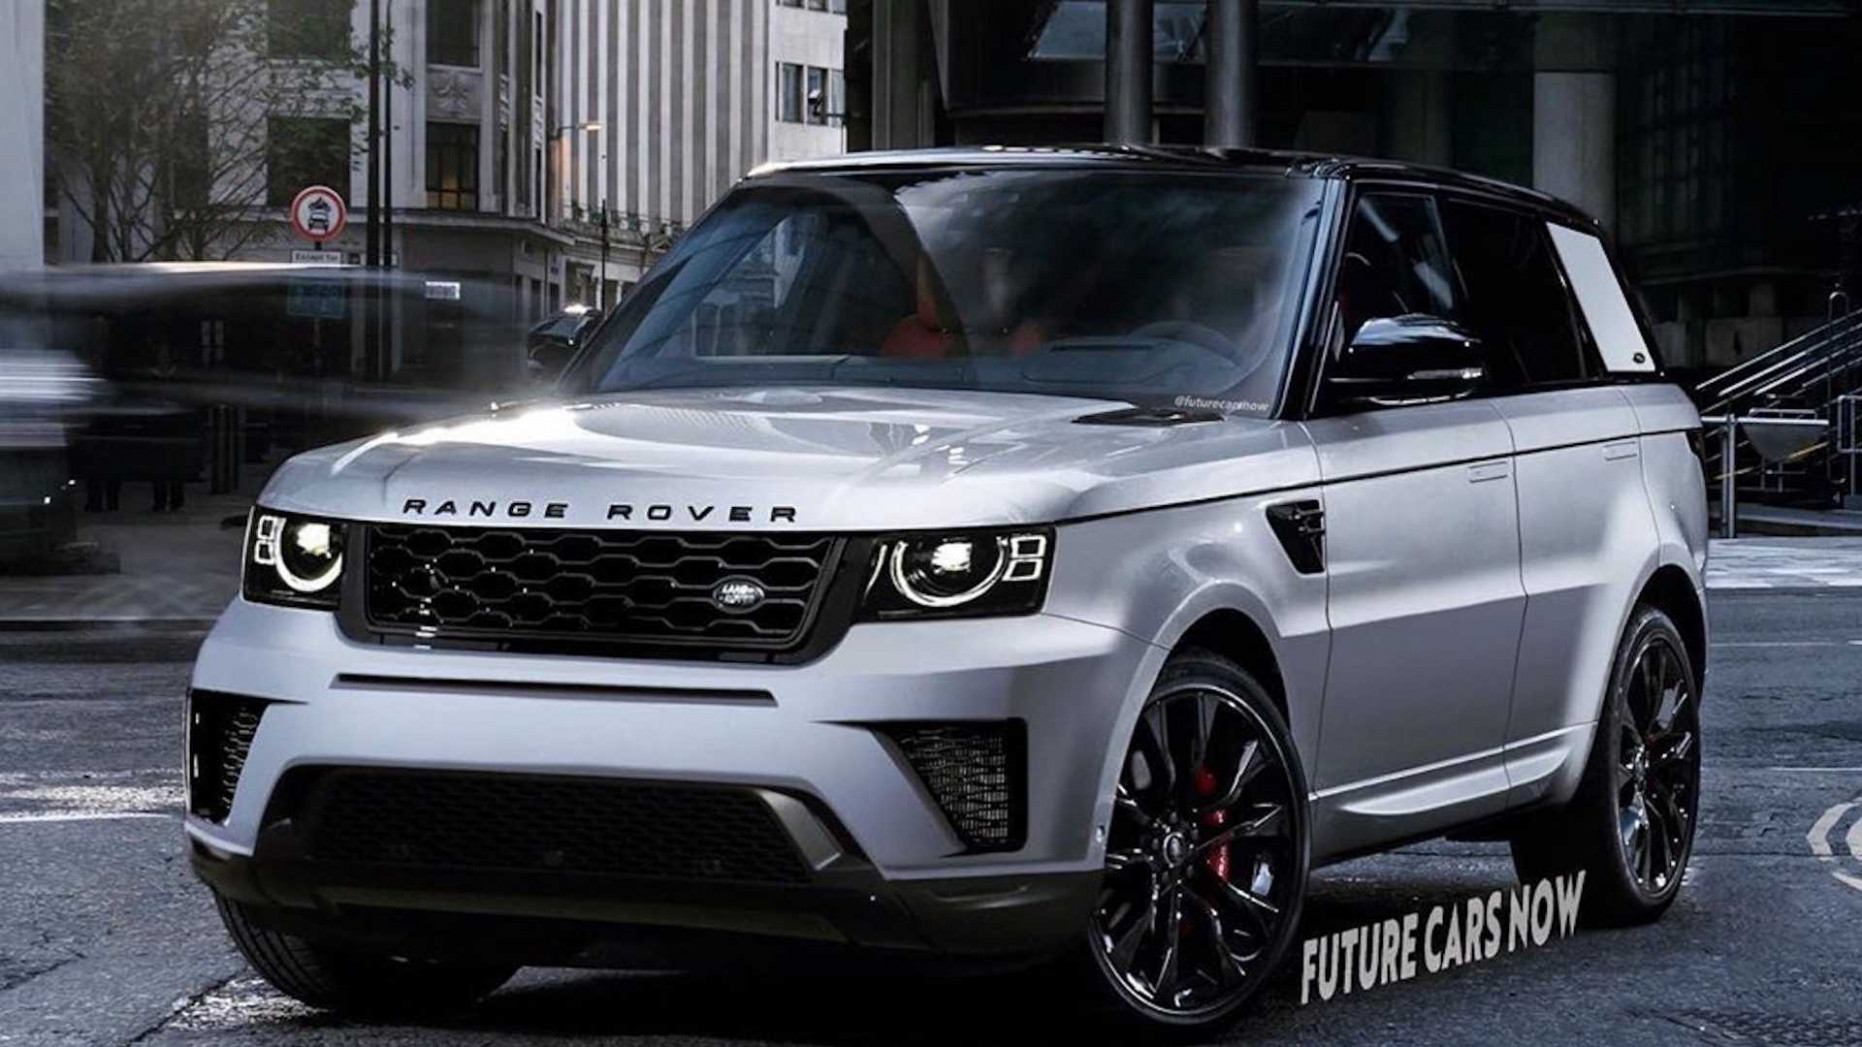 Wallpaper 2022 Range Rover Evoque